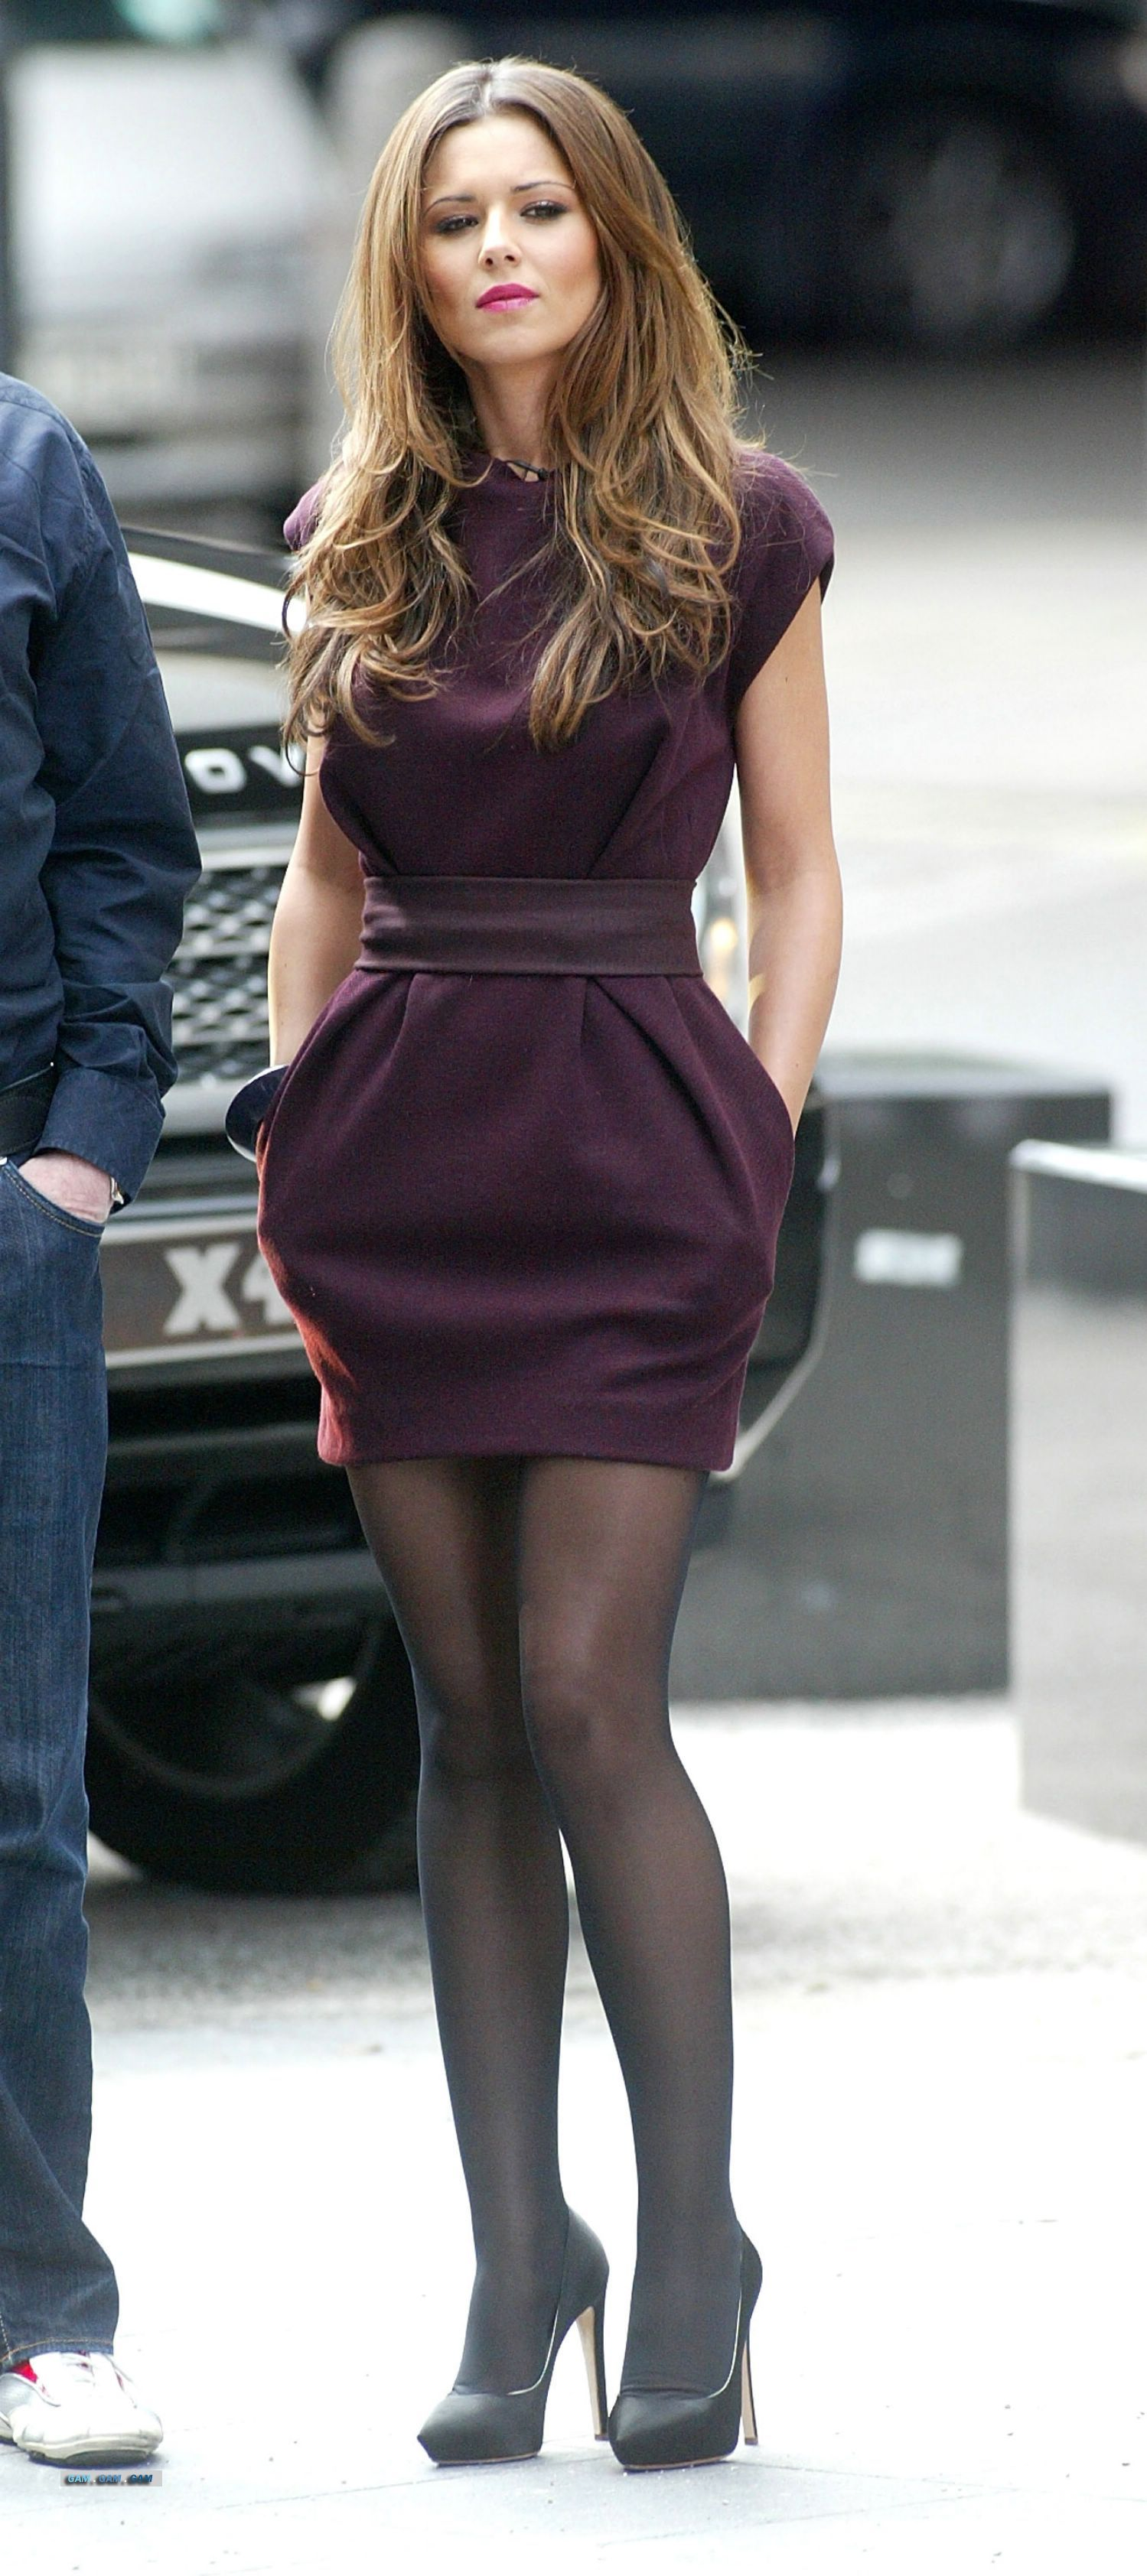 Cheryl Cole In Plum Dress And Opaques Cheryl Cole Red